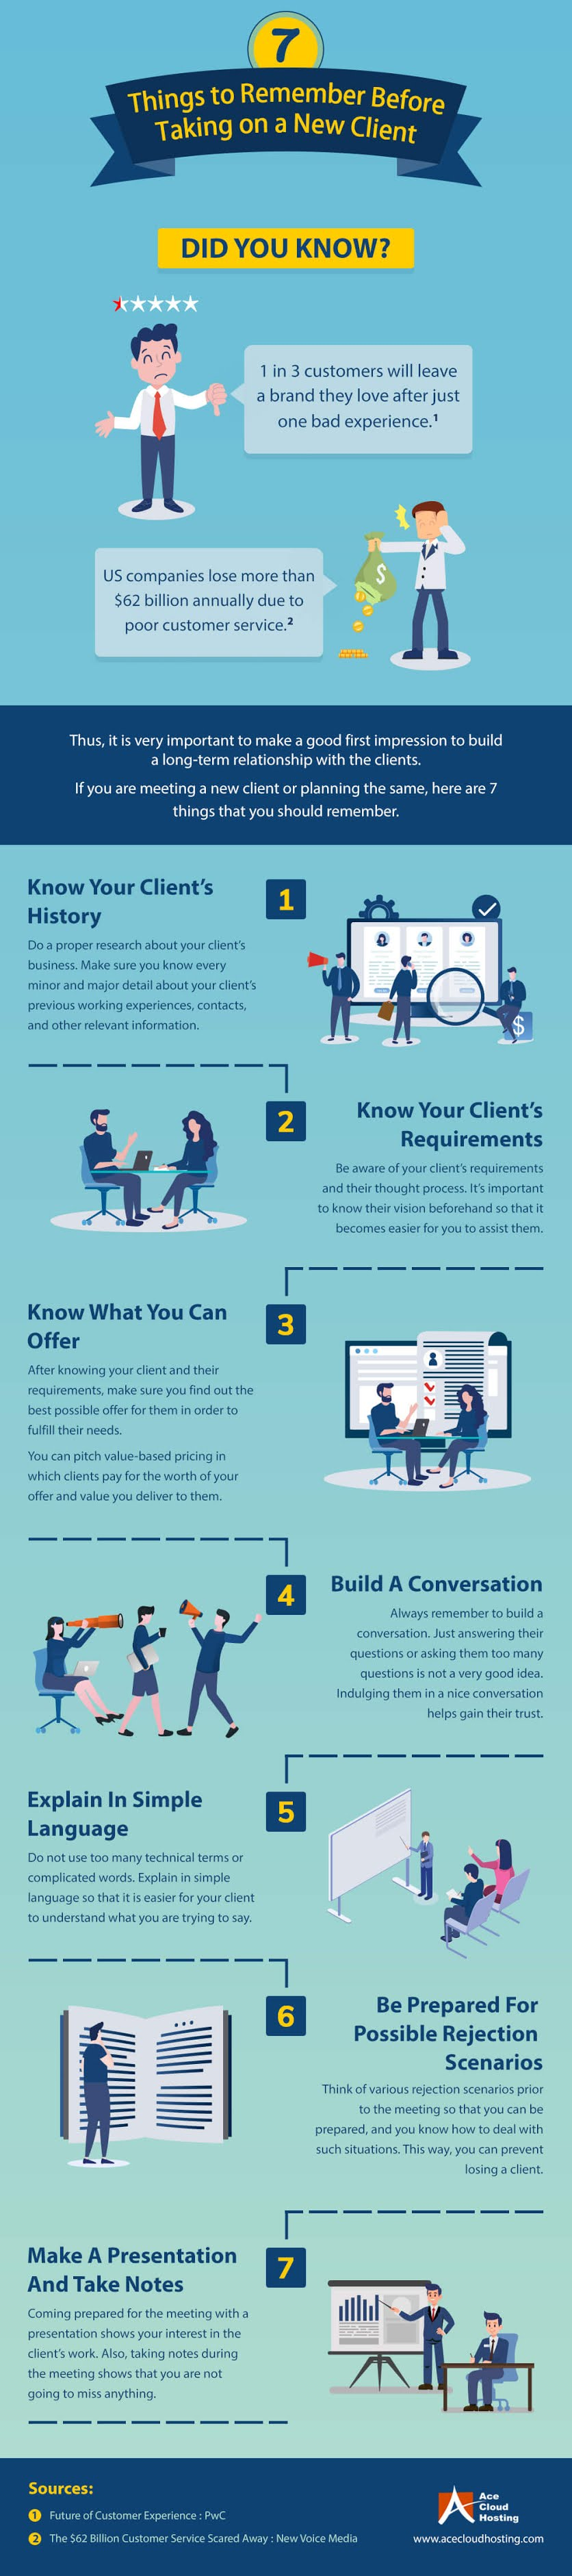 7 Things to Remember Before Taking on a New Client #infographic